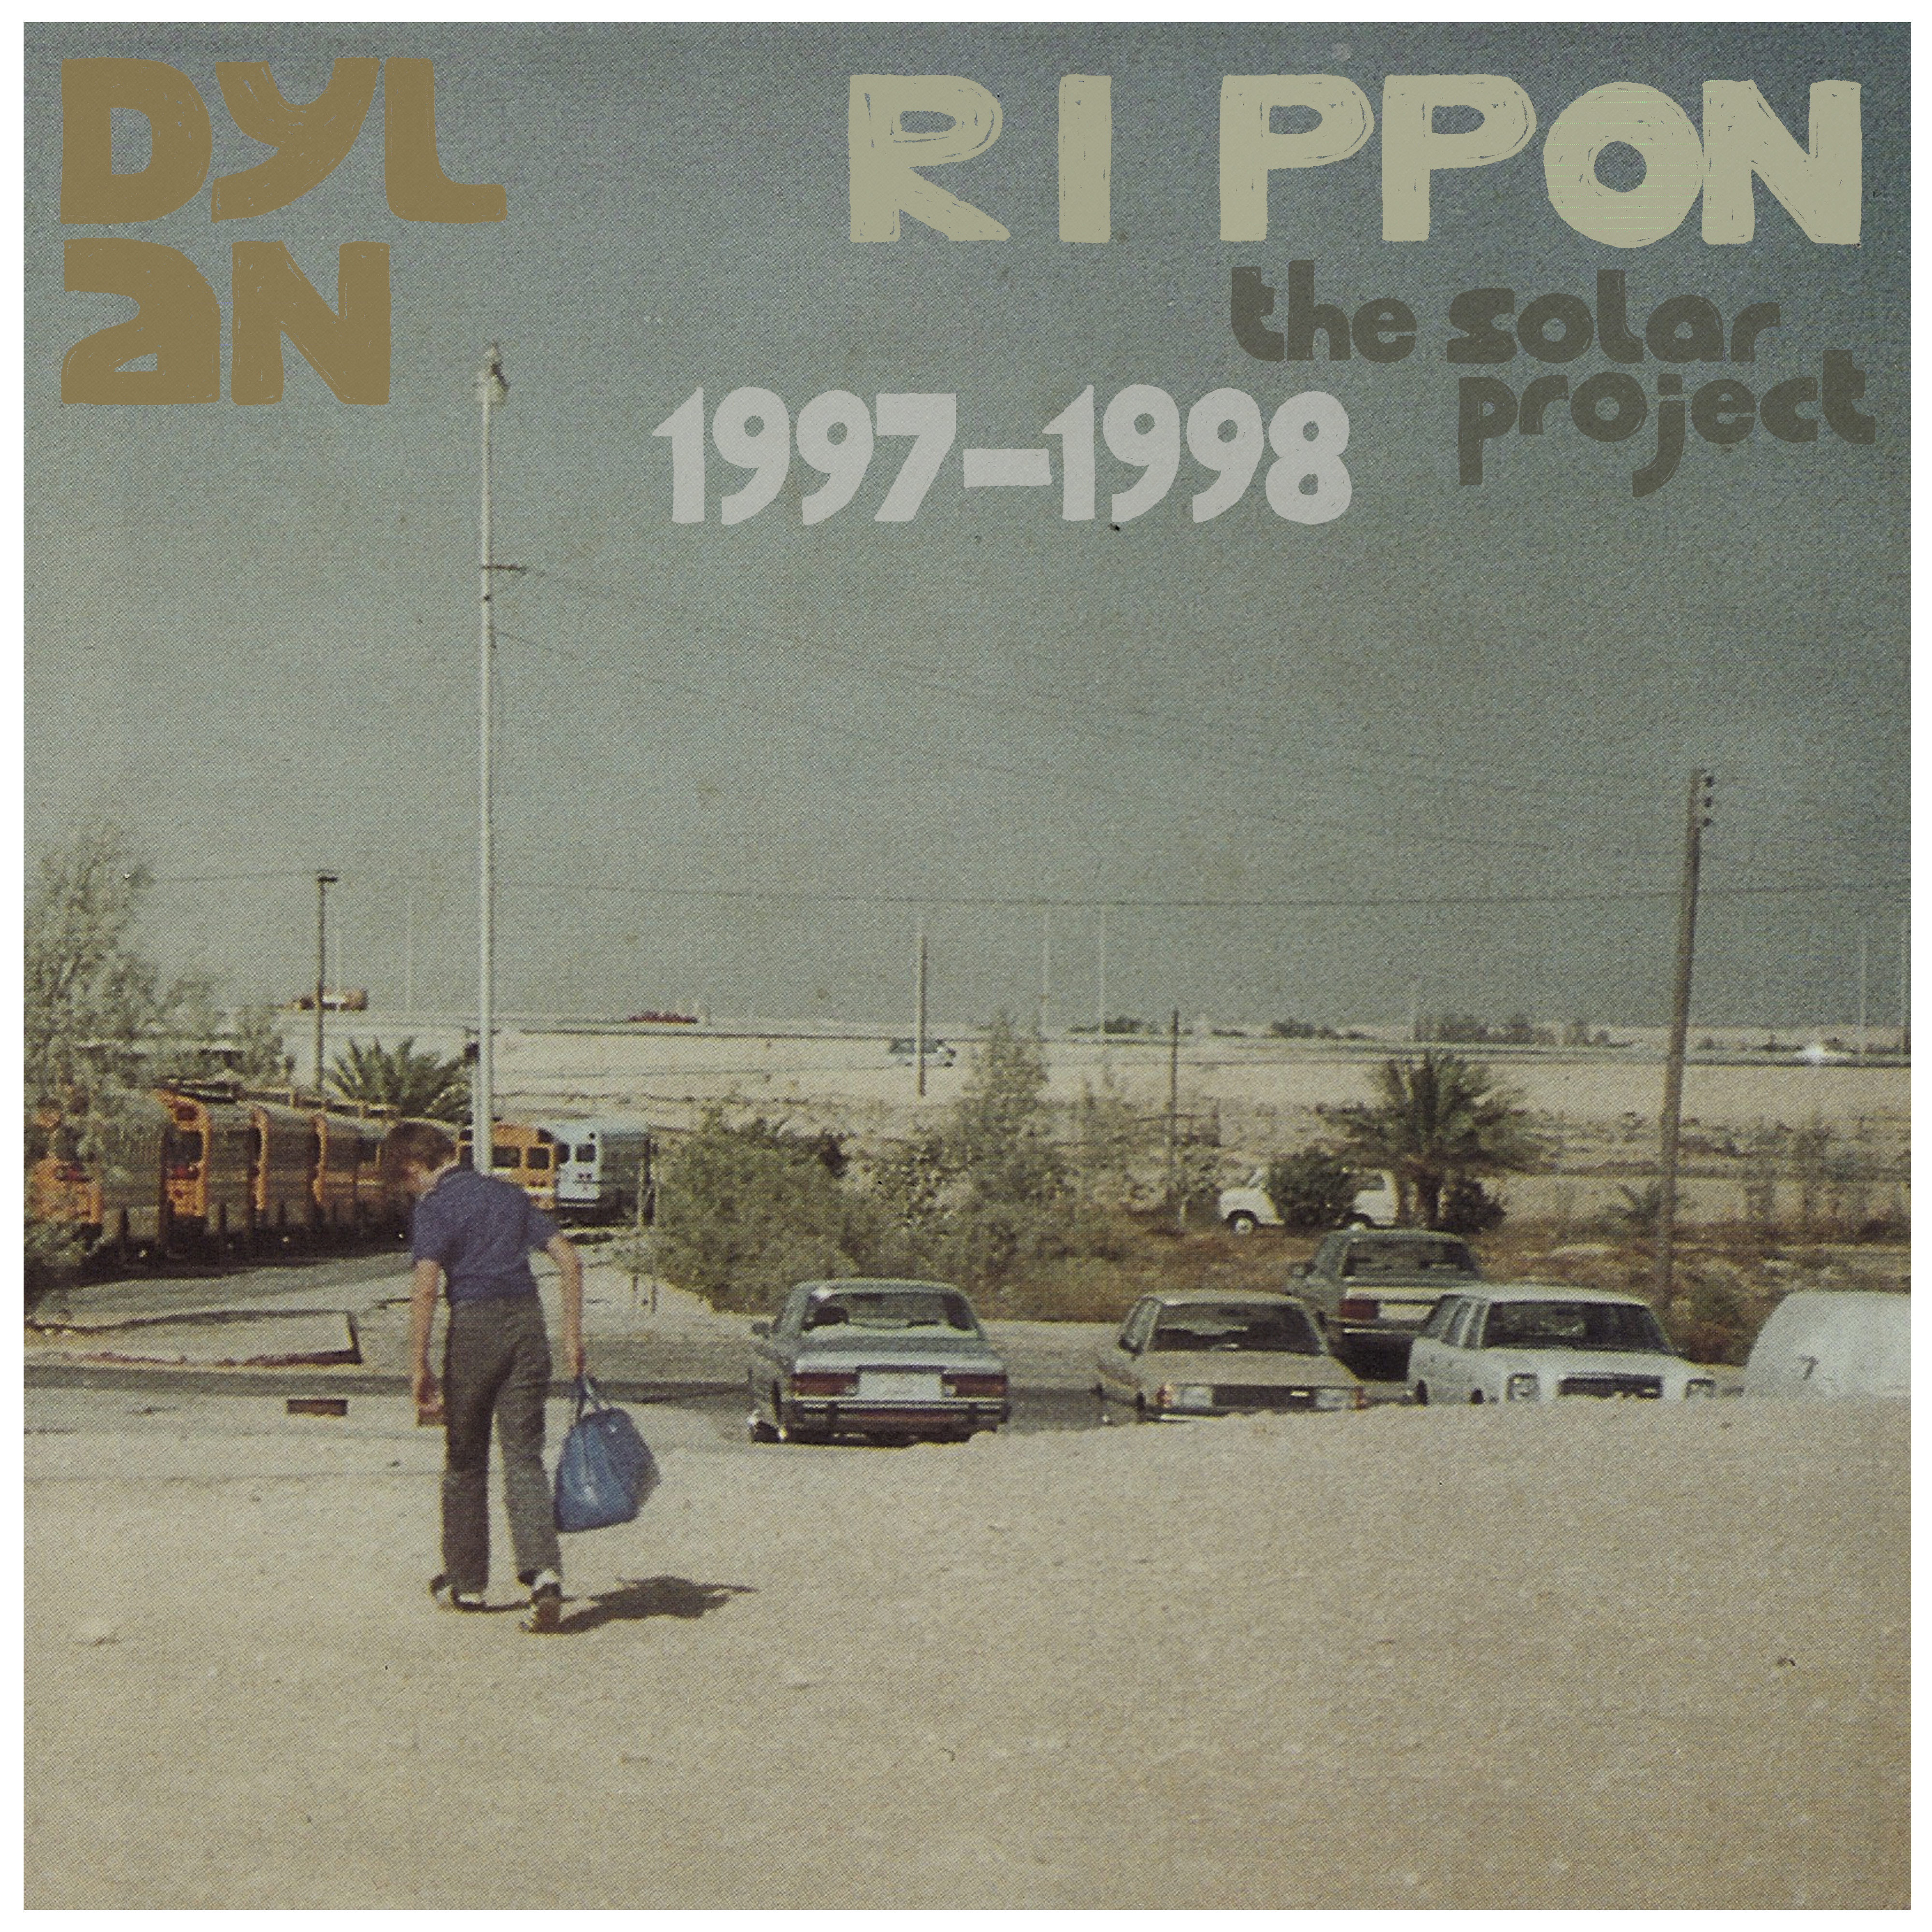 Dylan Rippon - The Solar Project